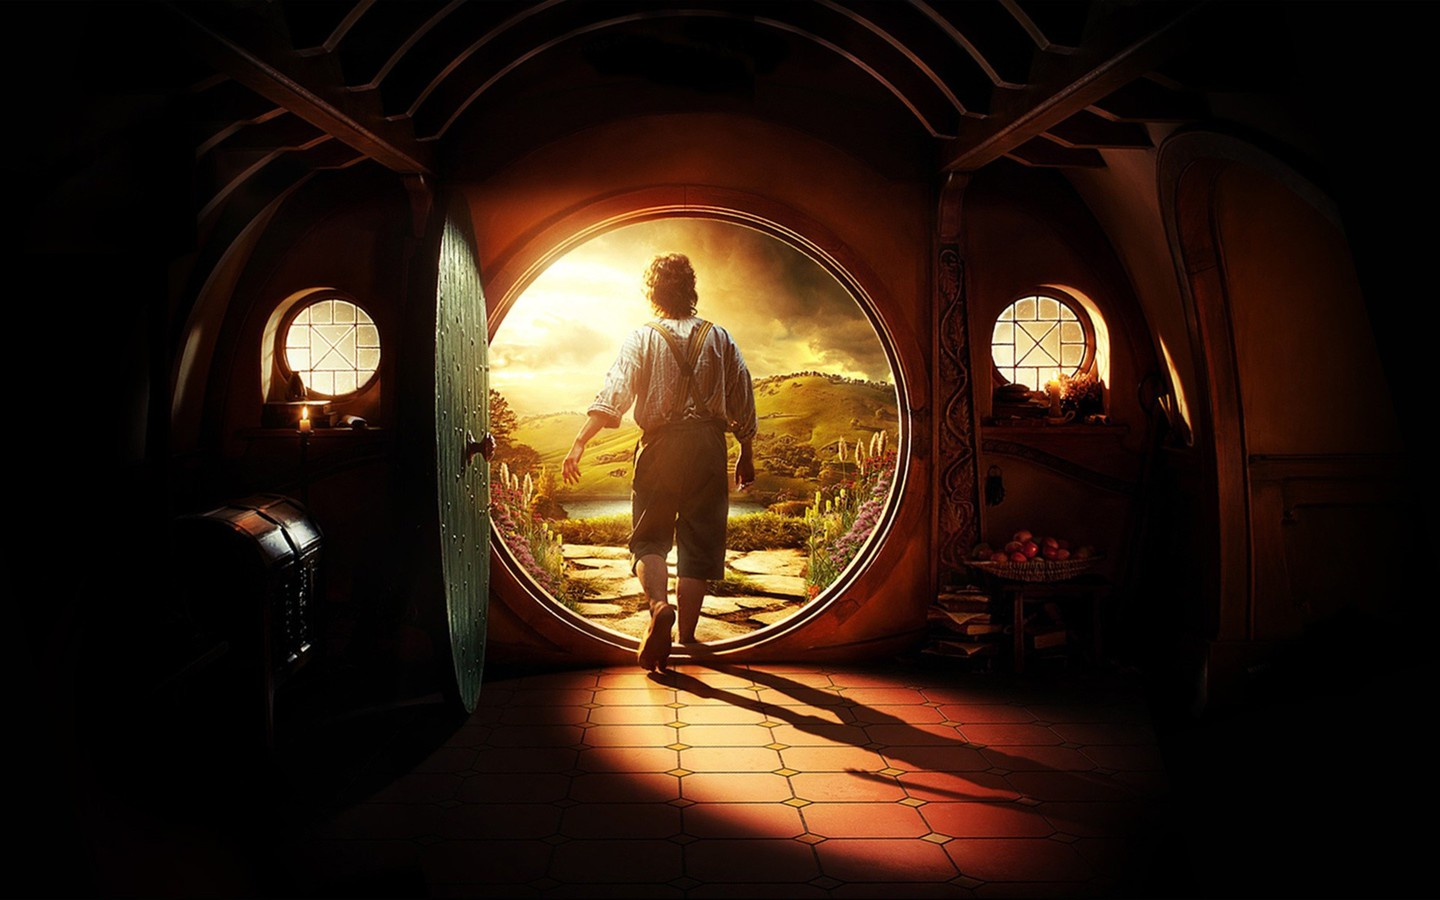 Bilbo baggins martin freeman the hobbit shire wallpaper AllWallpaper 1440x900